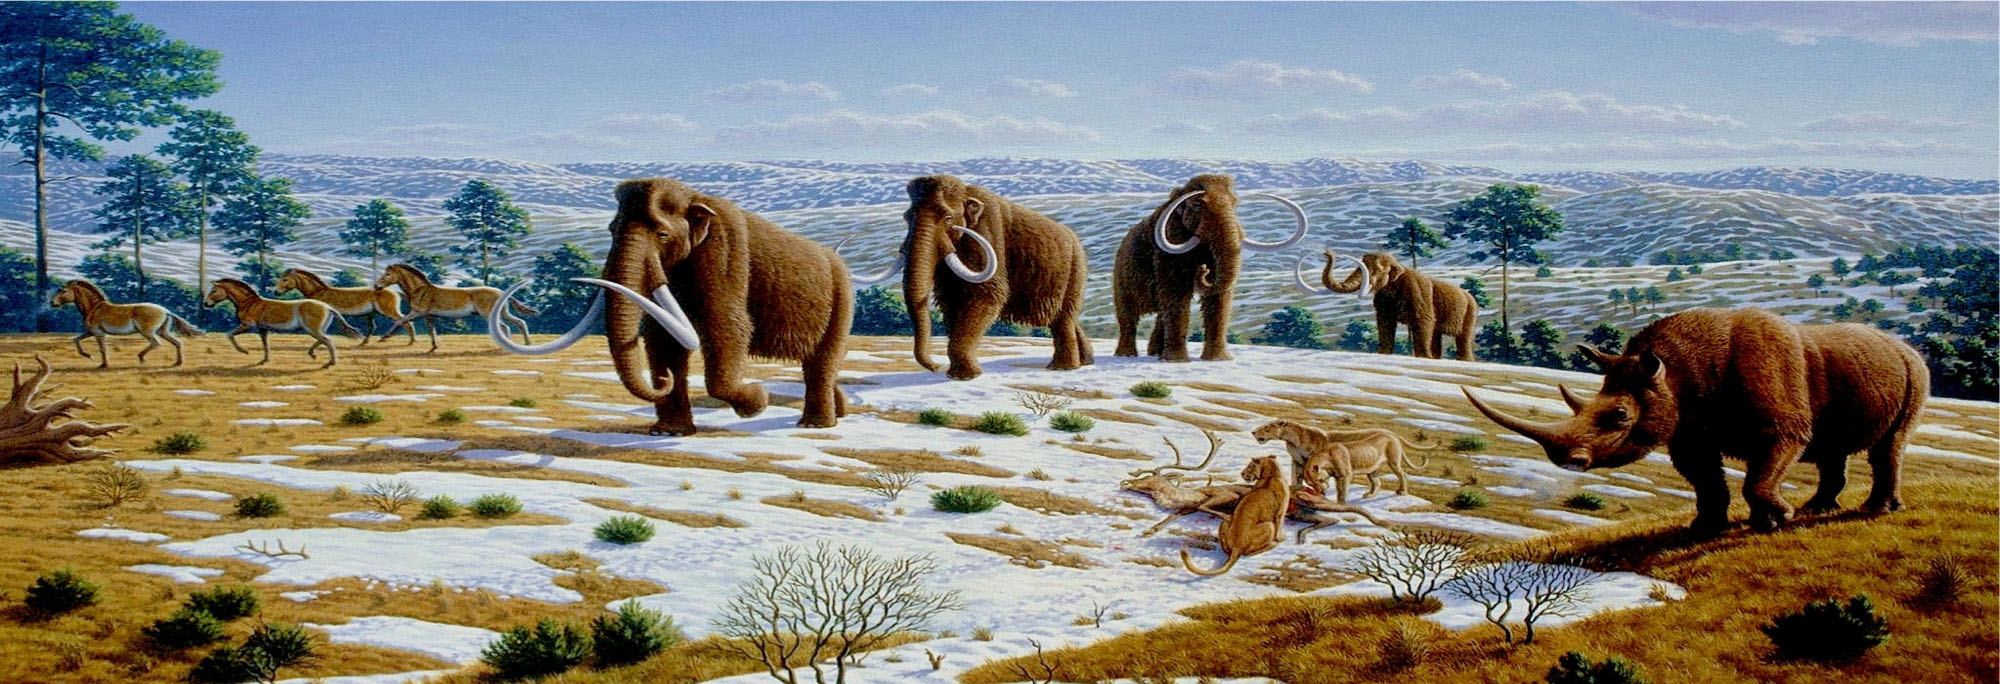 Alive found woolly mammoth Woolly mammoth